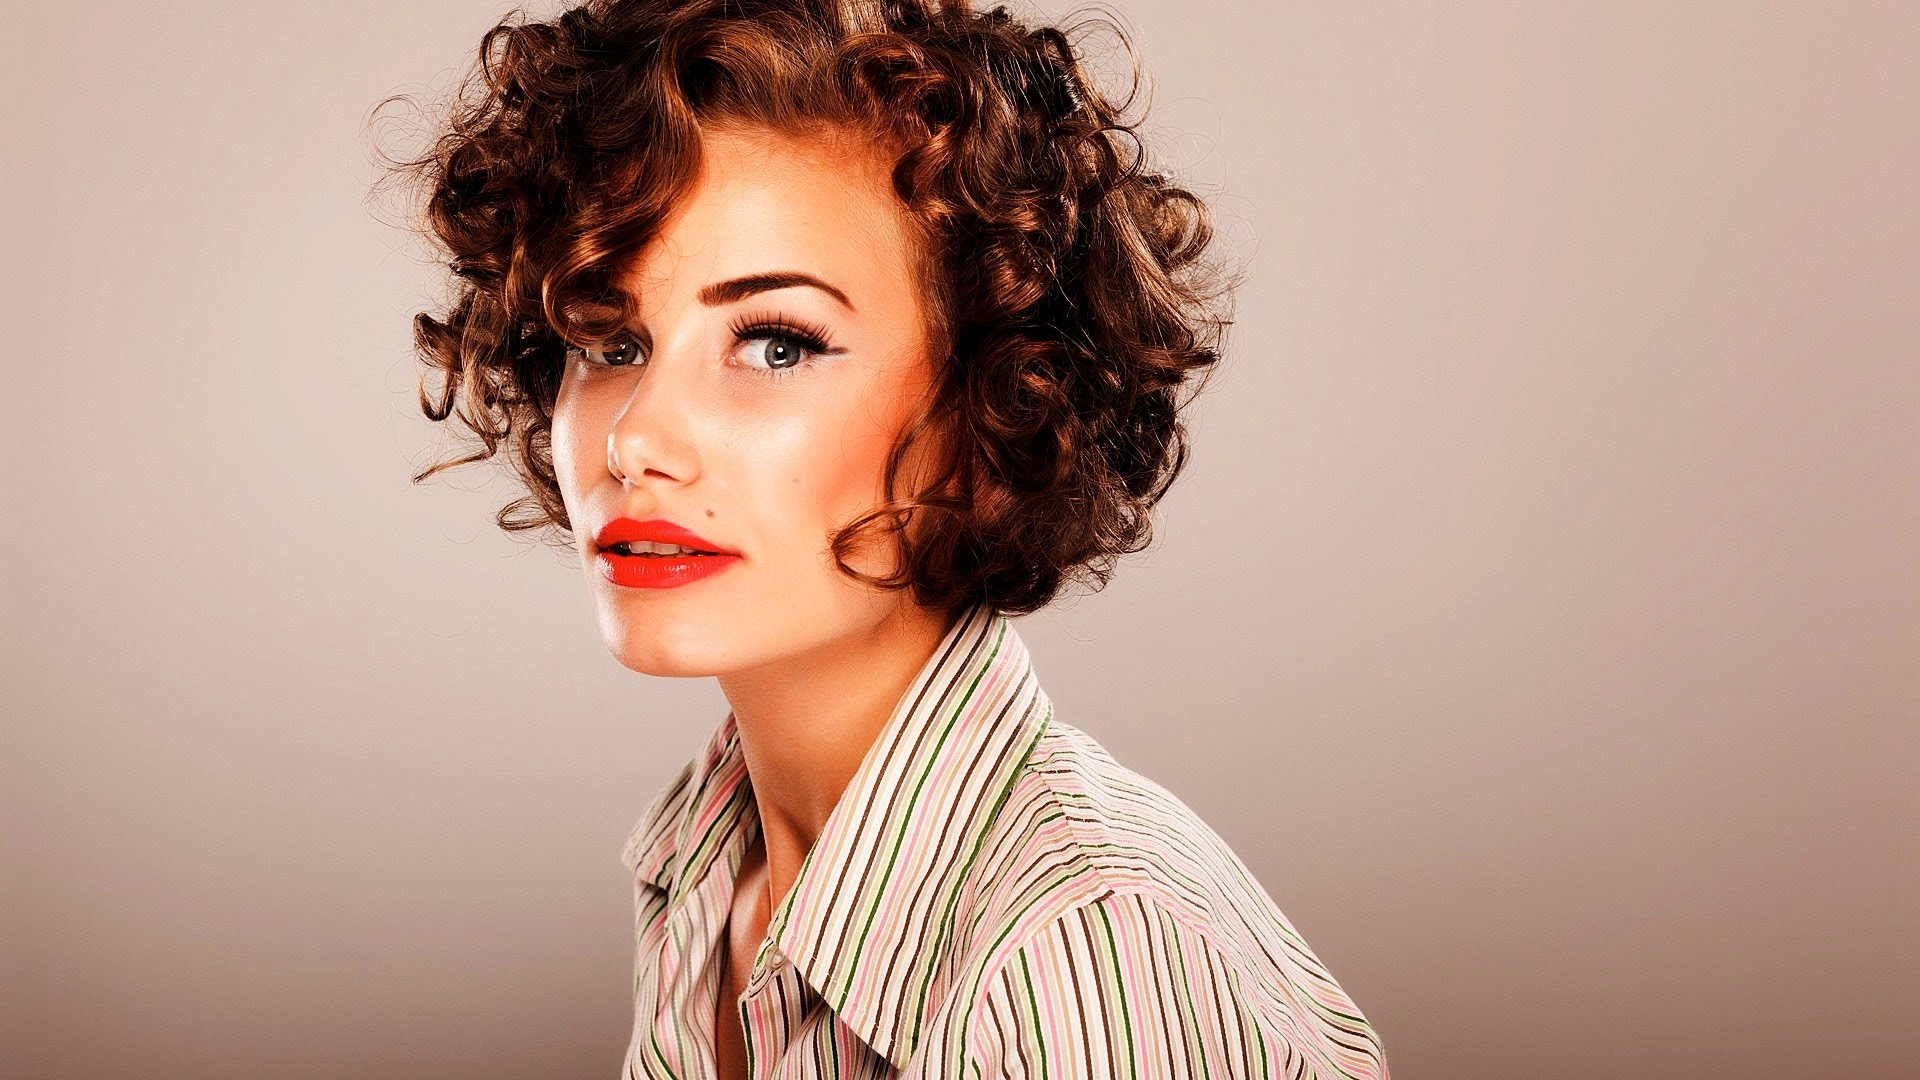 Marvelous Looking Short Hairstyles for Curly Hair